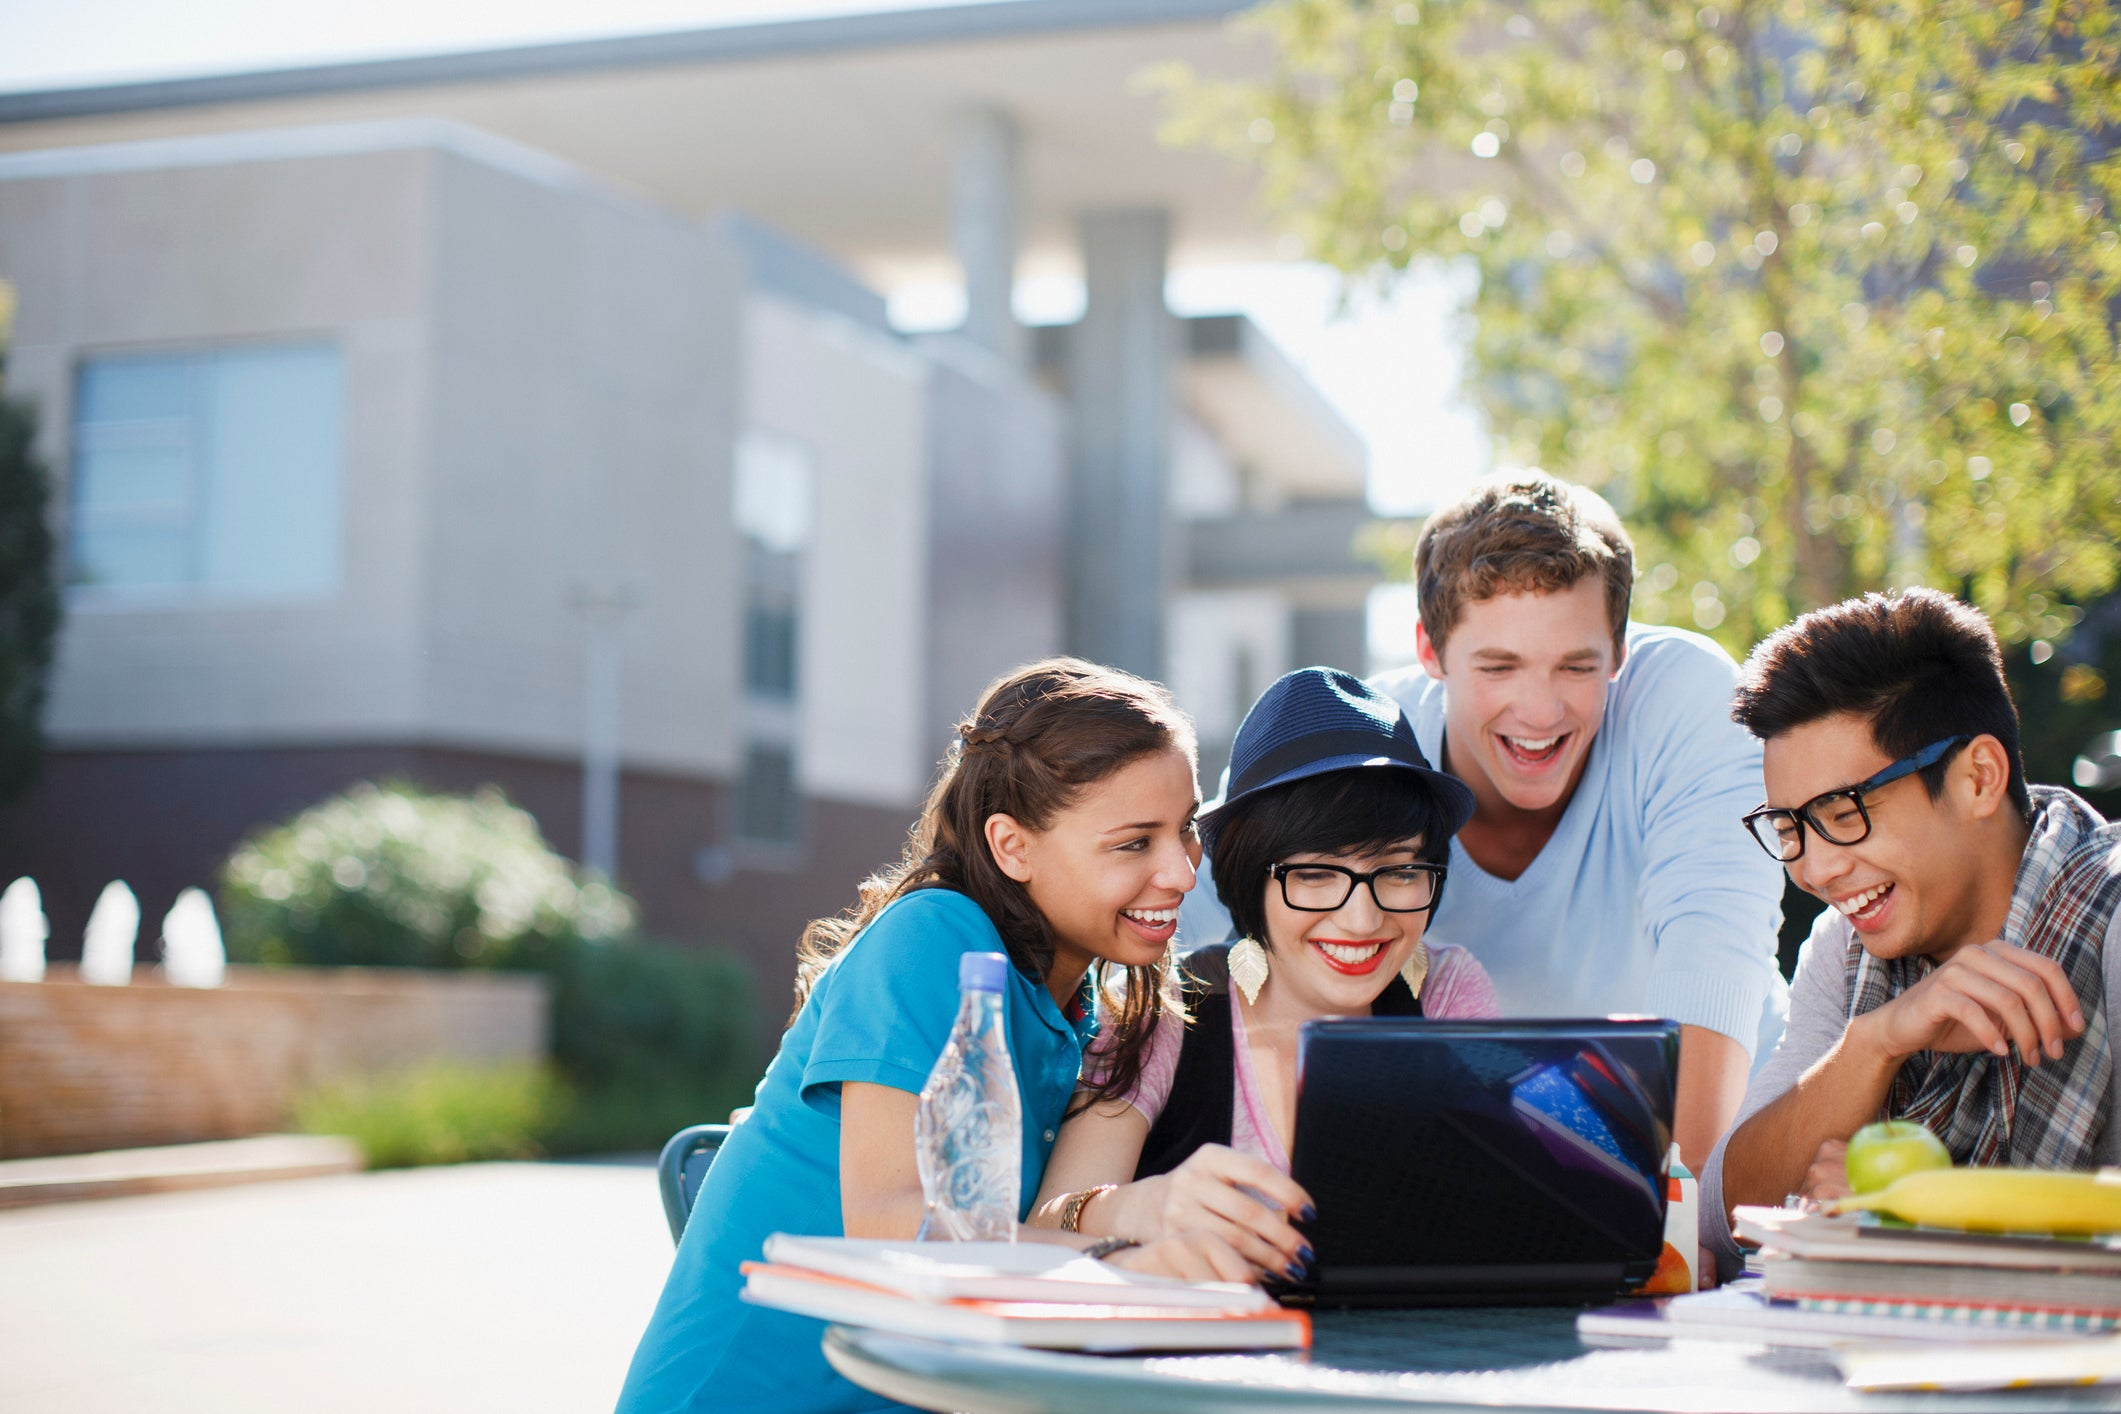 Smiling college students gathered around laptop at an outdoor table.